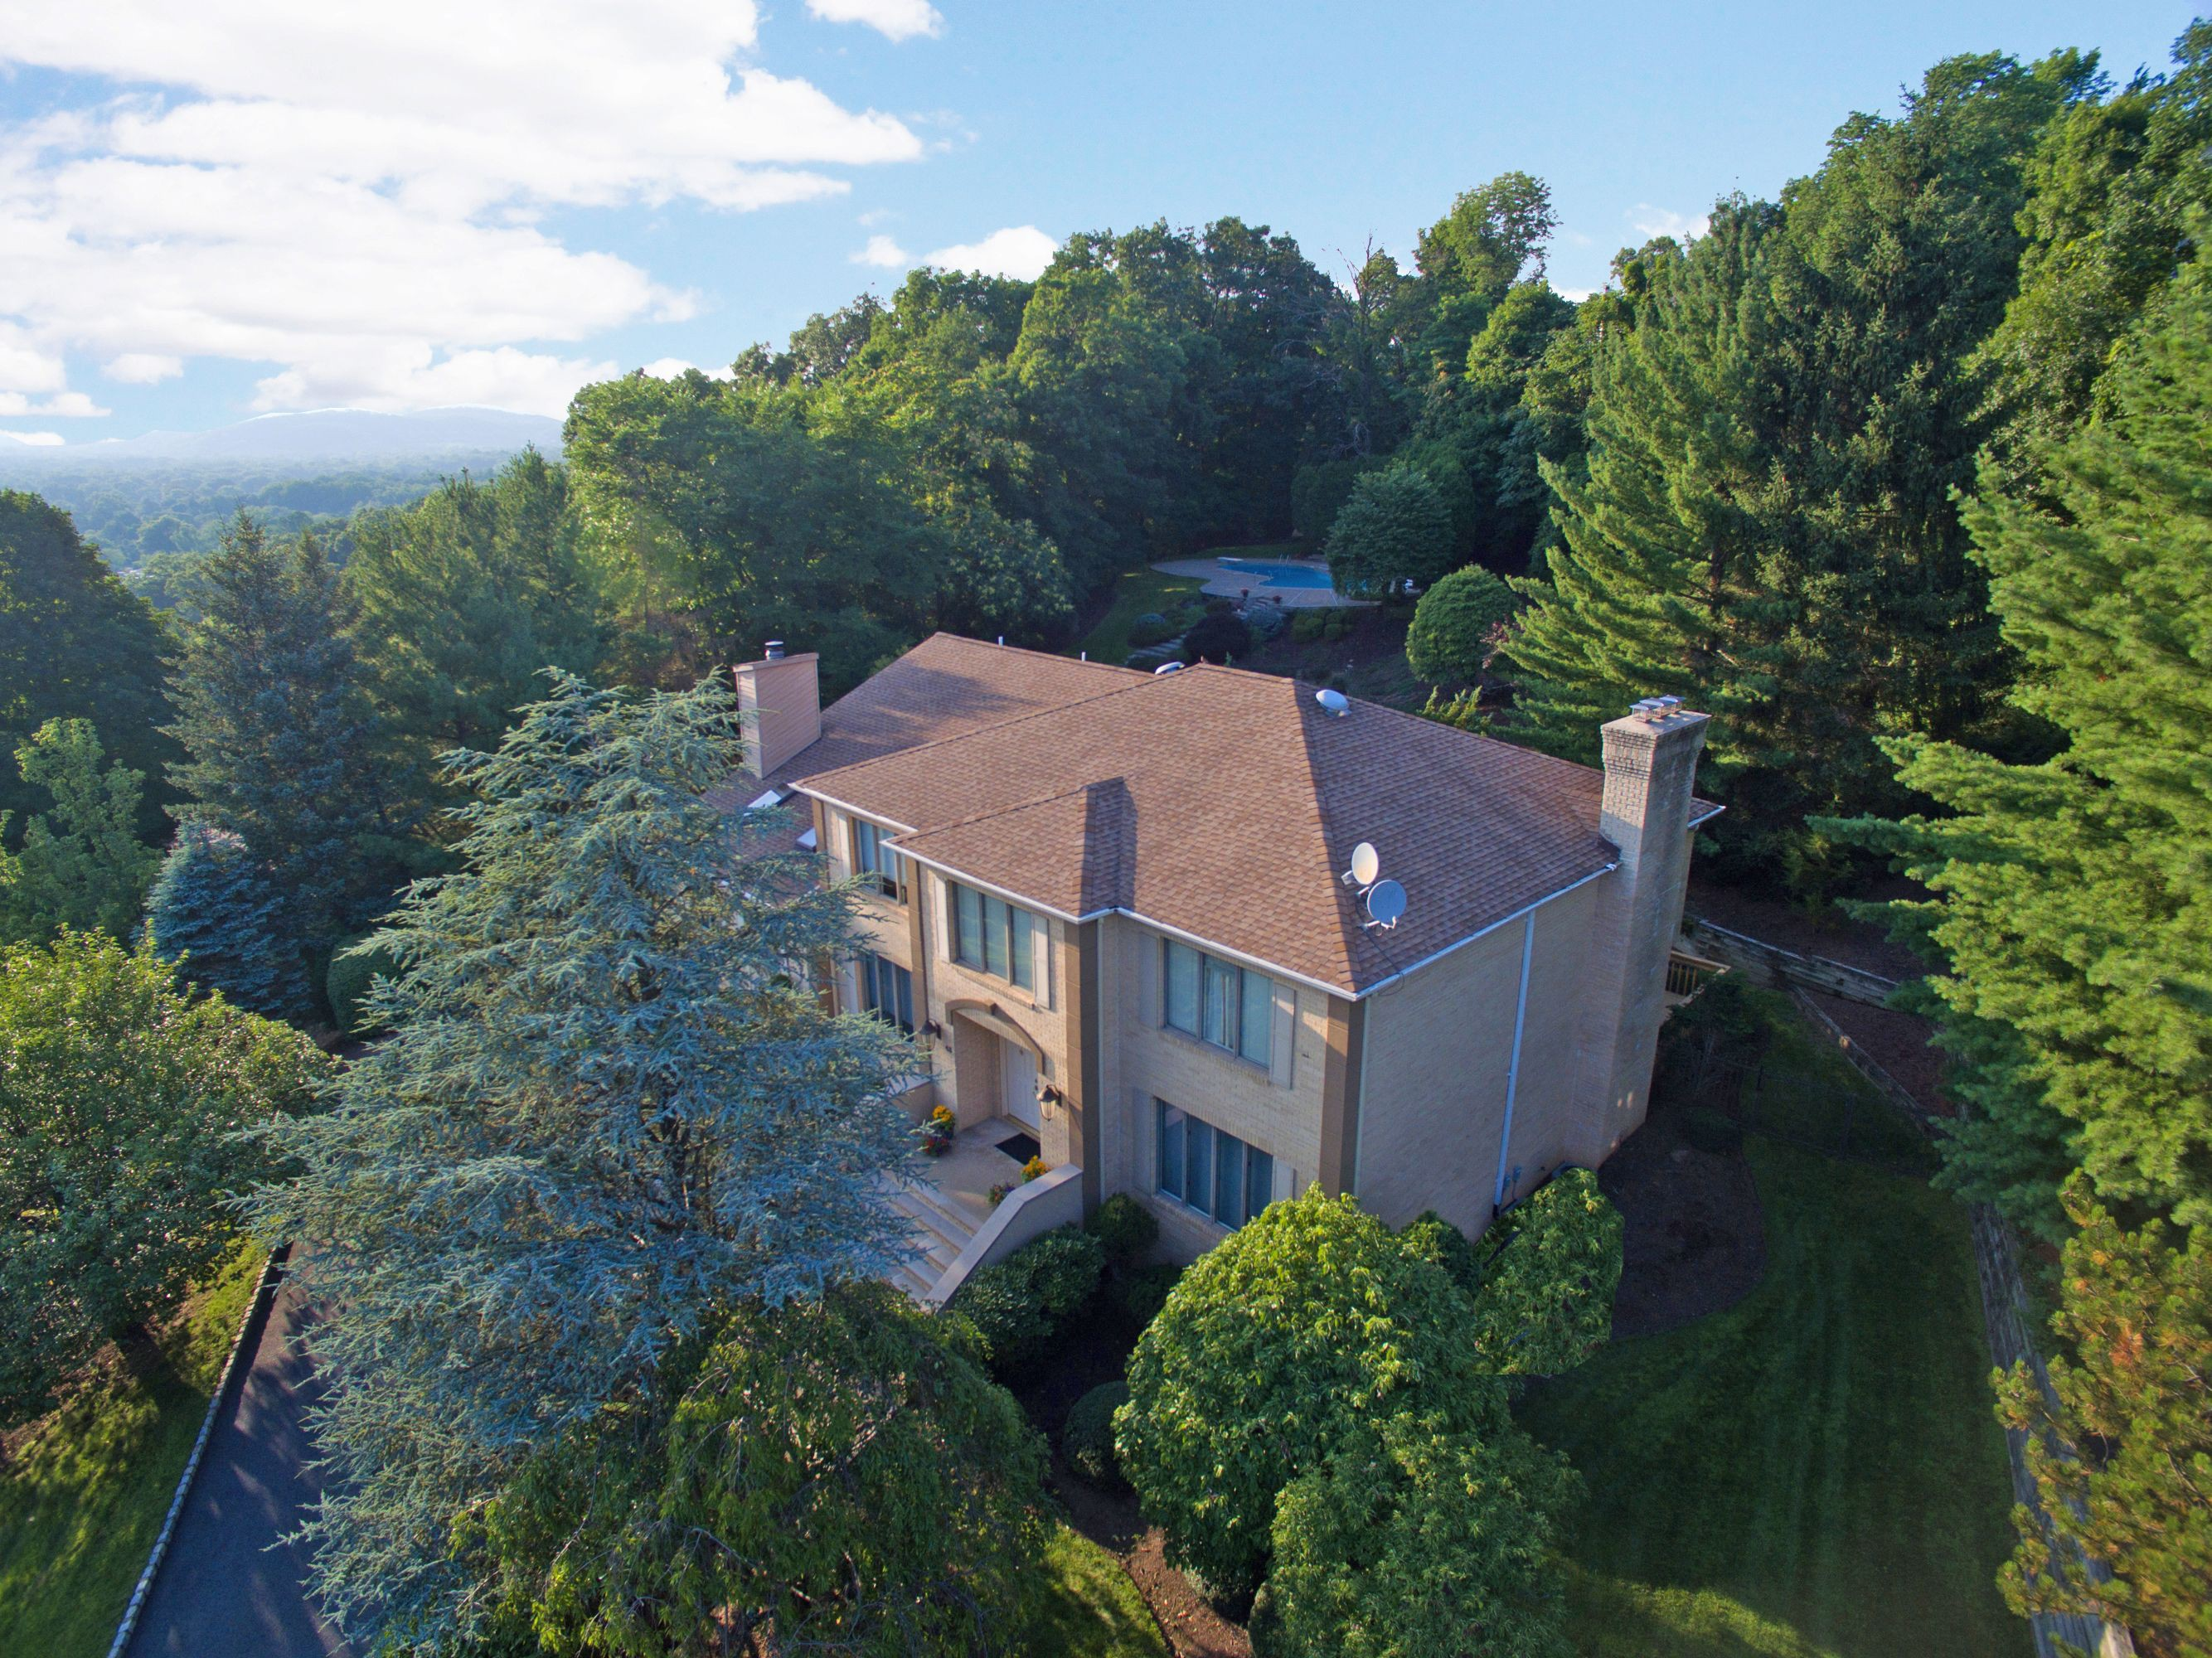 Single Family Home for Sale at Vizcaya Estates with Amazing Views 43 Westview Road Wayne, 07470 United States